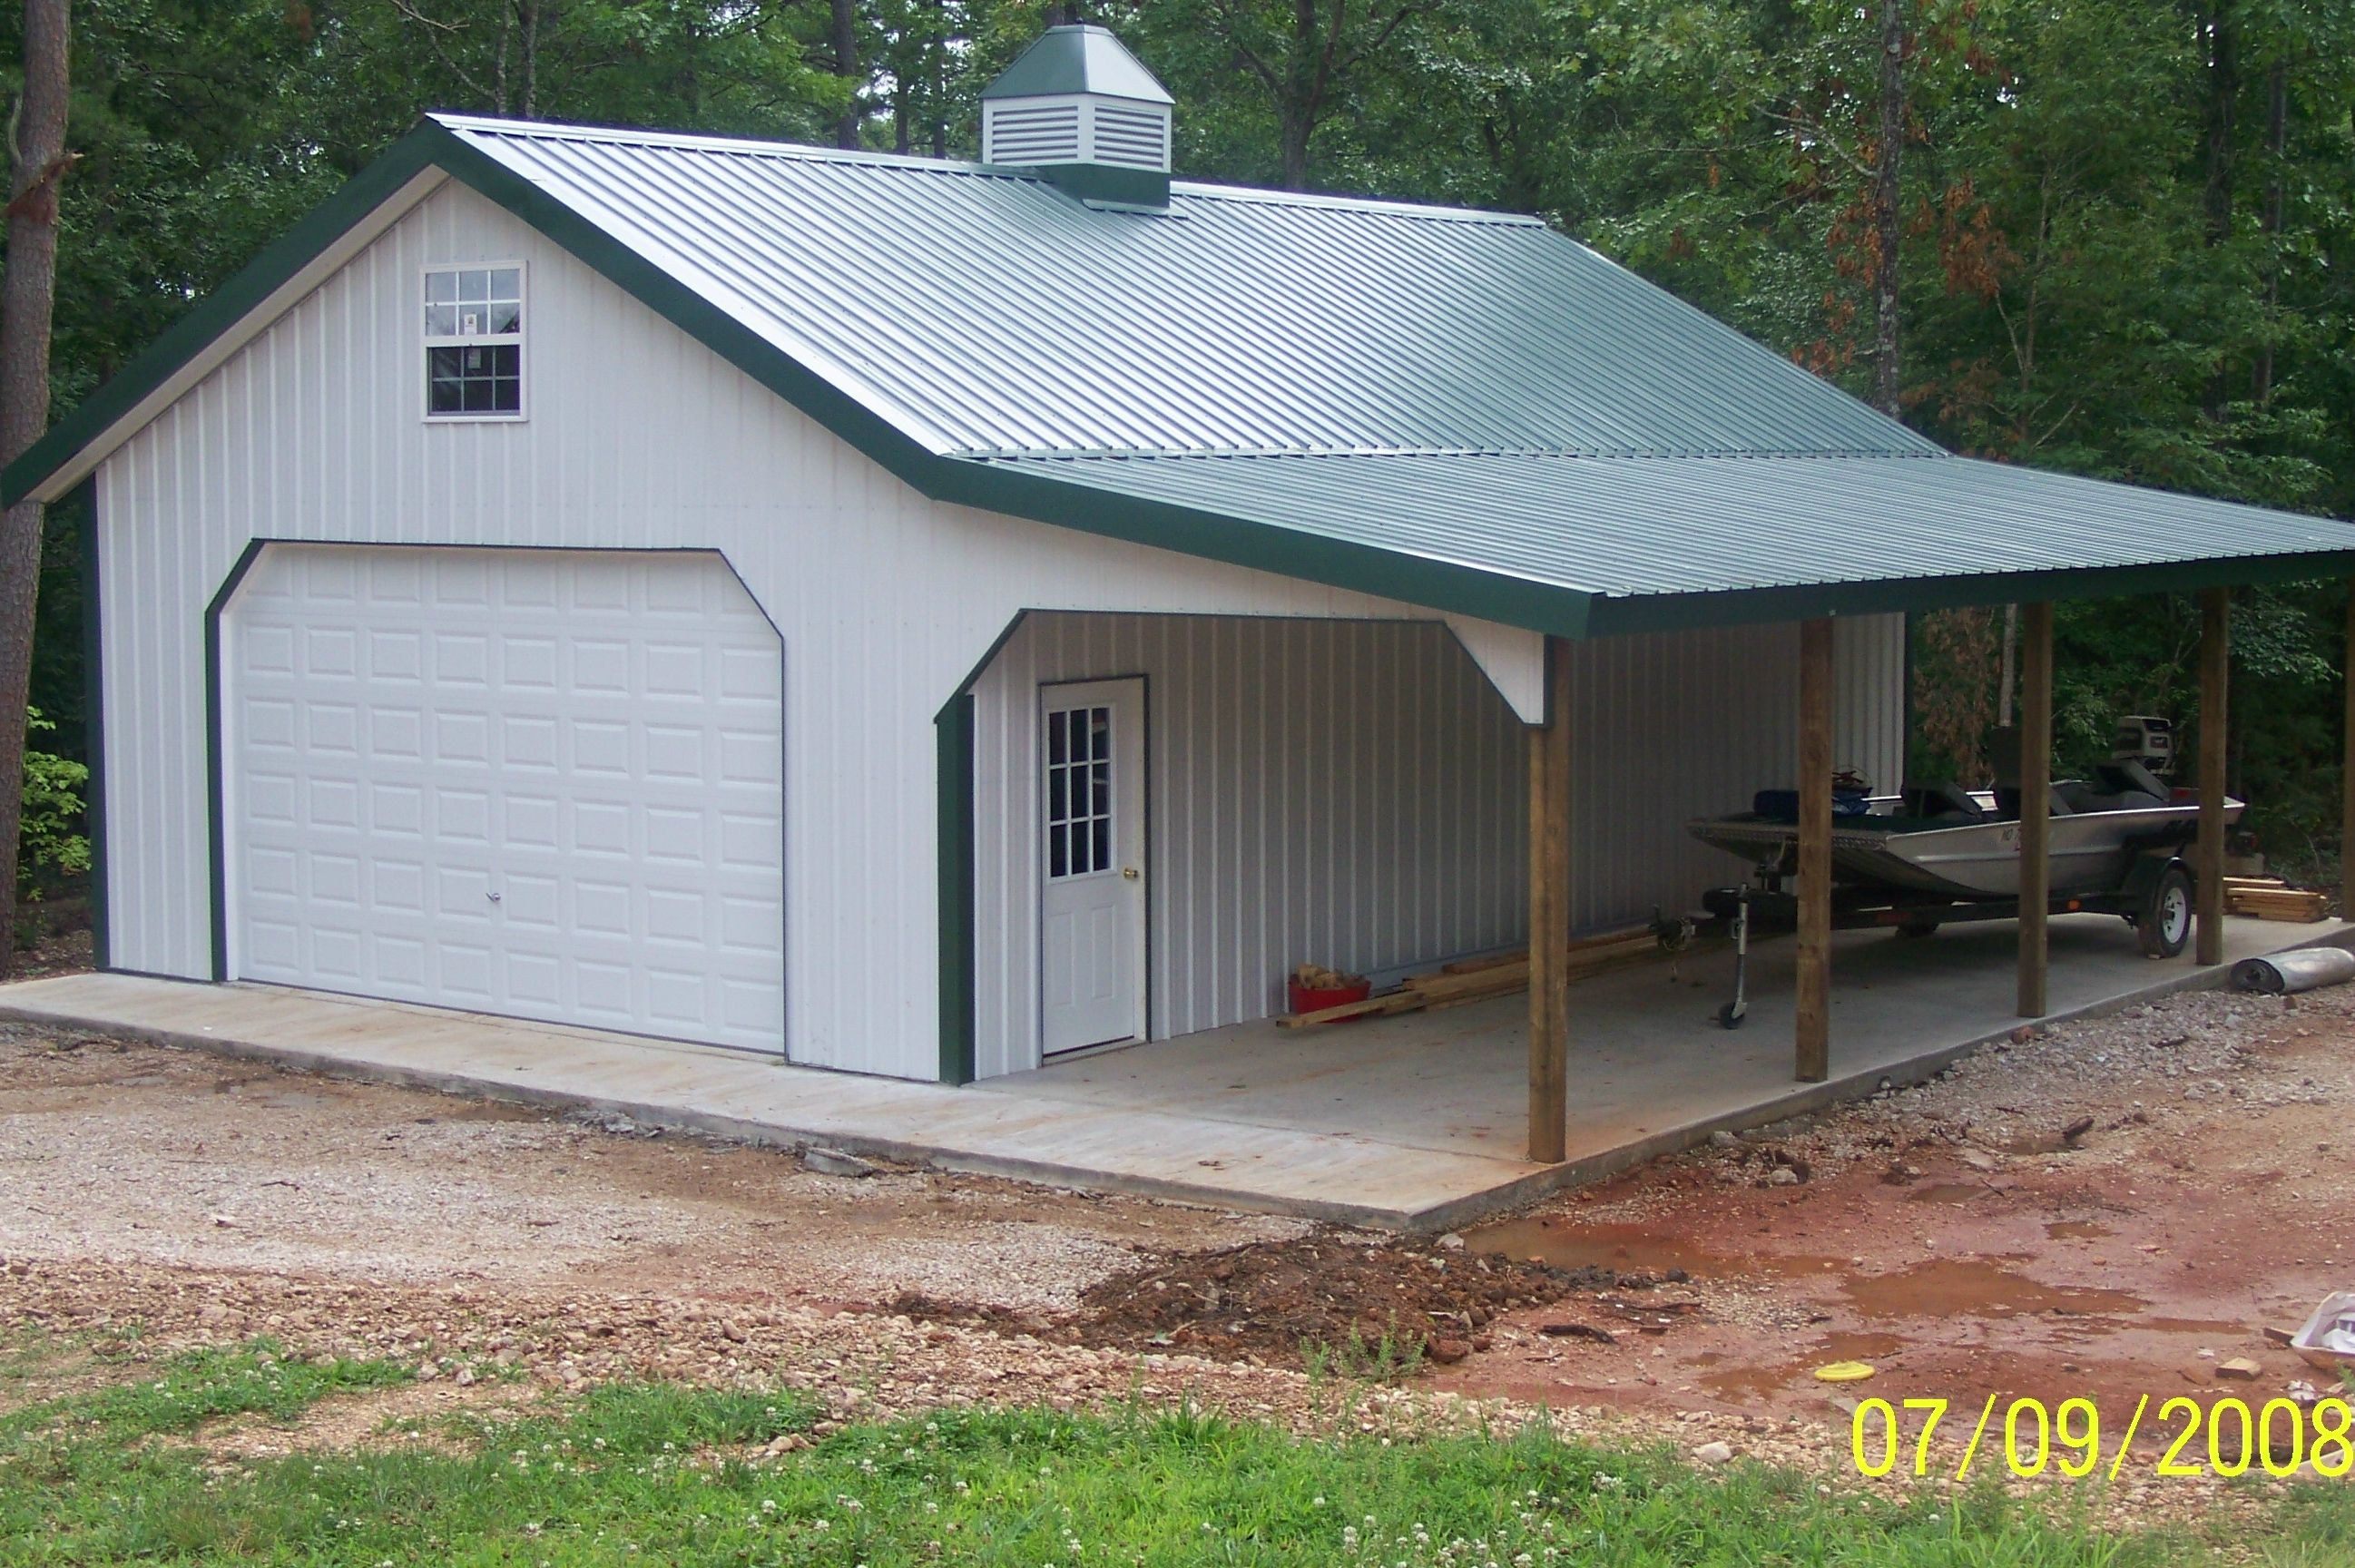 Garage plans 58 garage plans and free diy building guides shed ideas pinterest barn - Garage house kits property ...